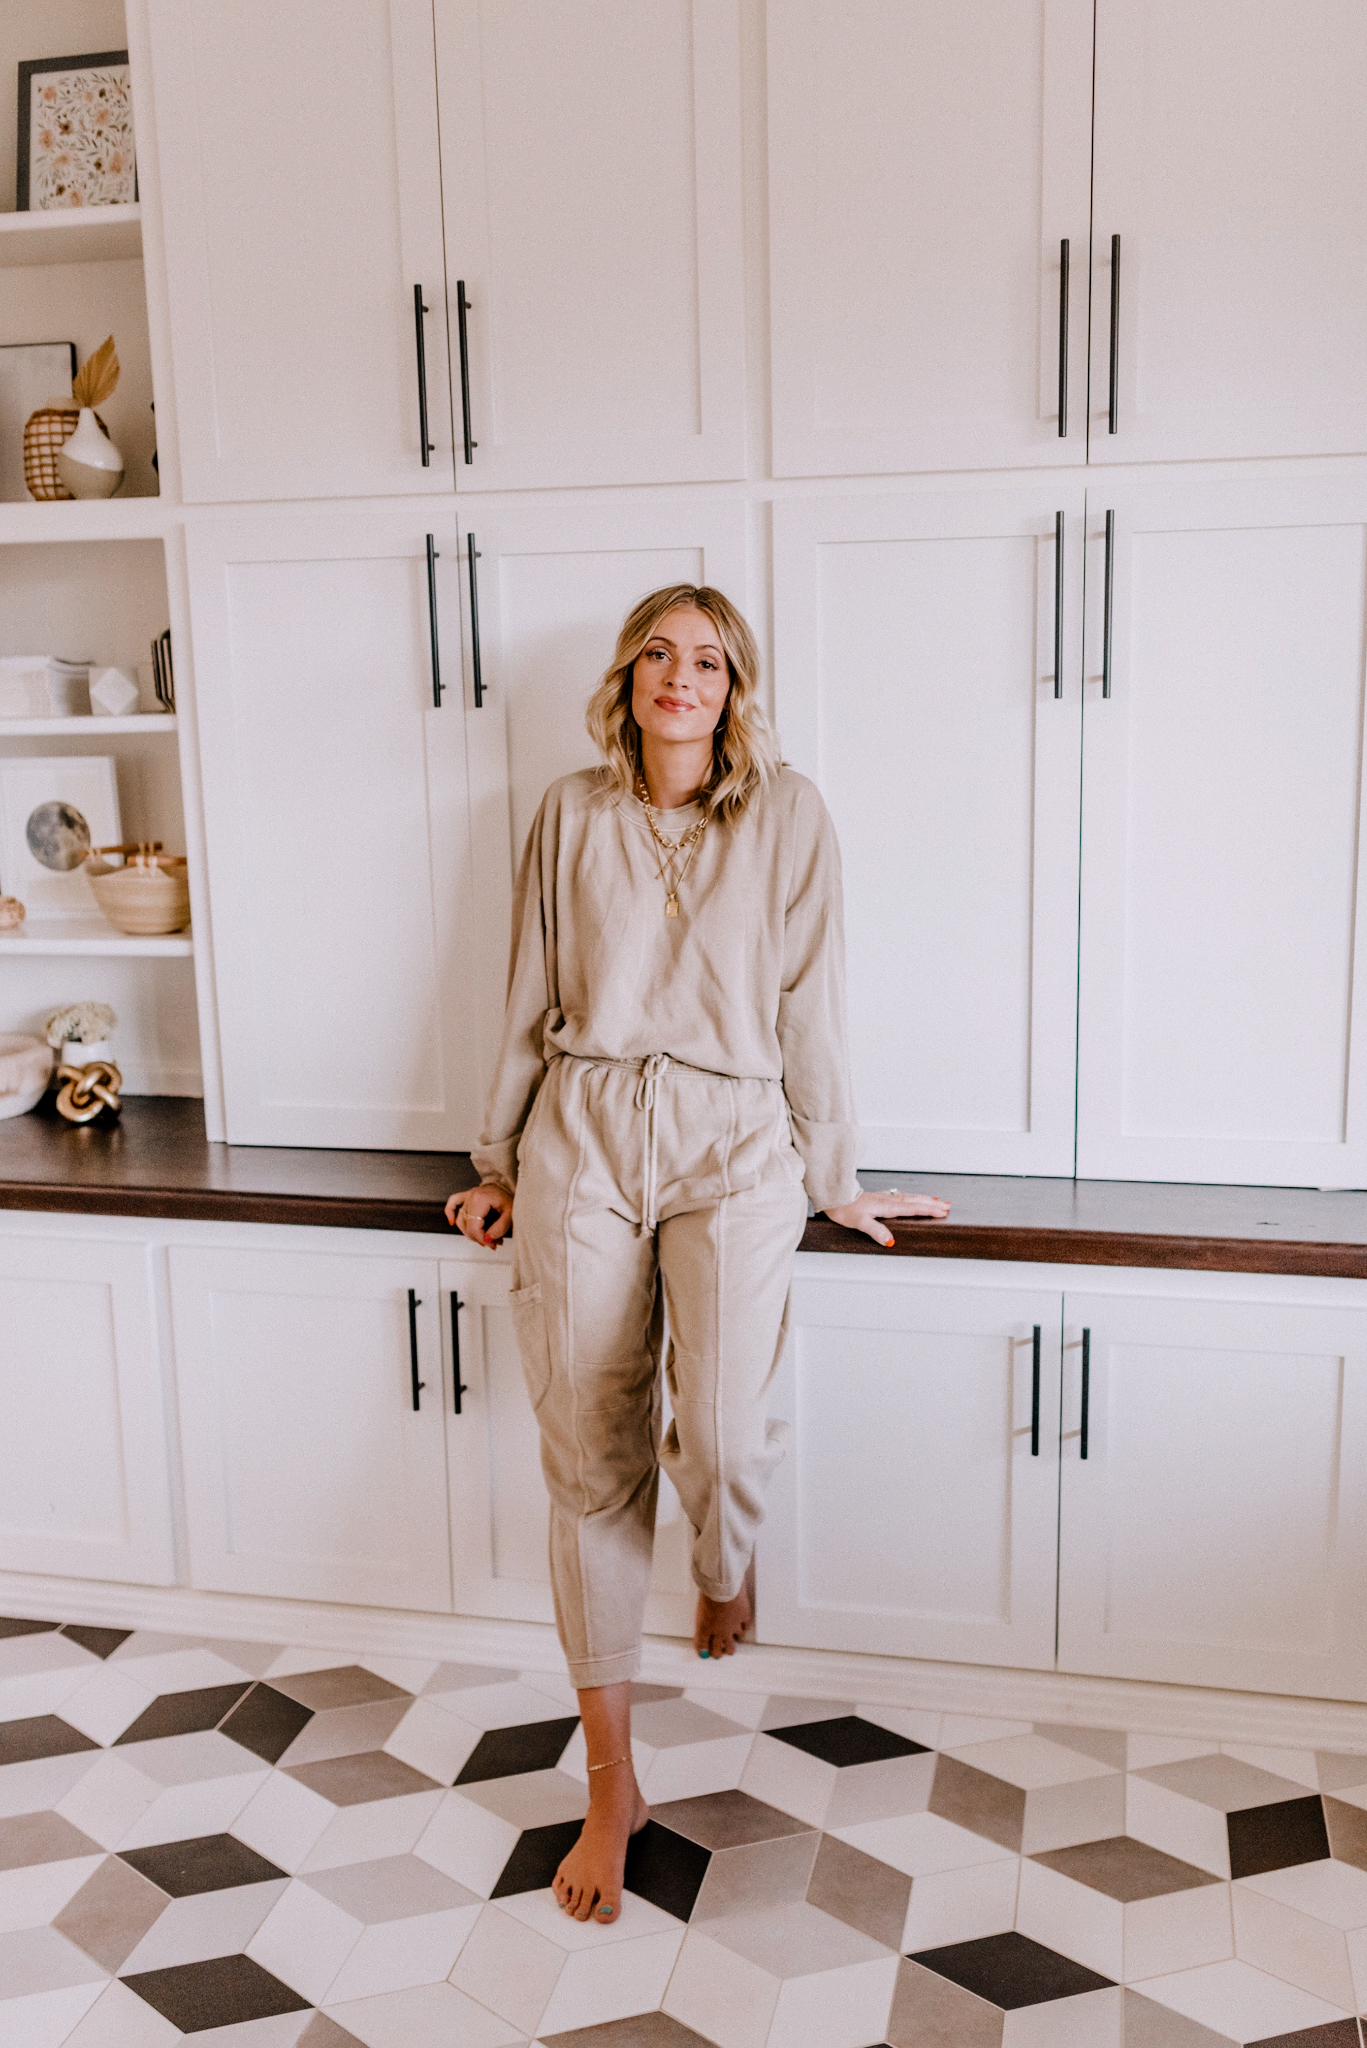 2020 Black Friday Deals by popular San Diego life and style blog, Navy Grace: image of a woman wearing a cream loungewear set and leaning back against some white cupboards.